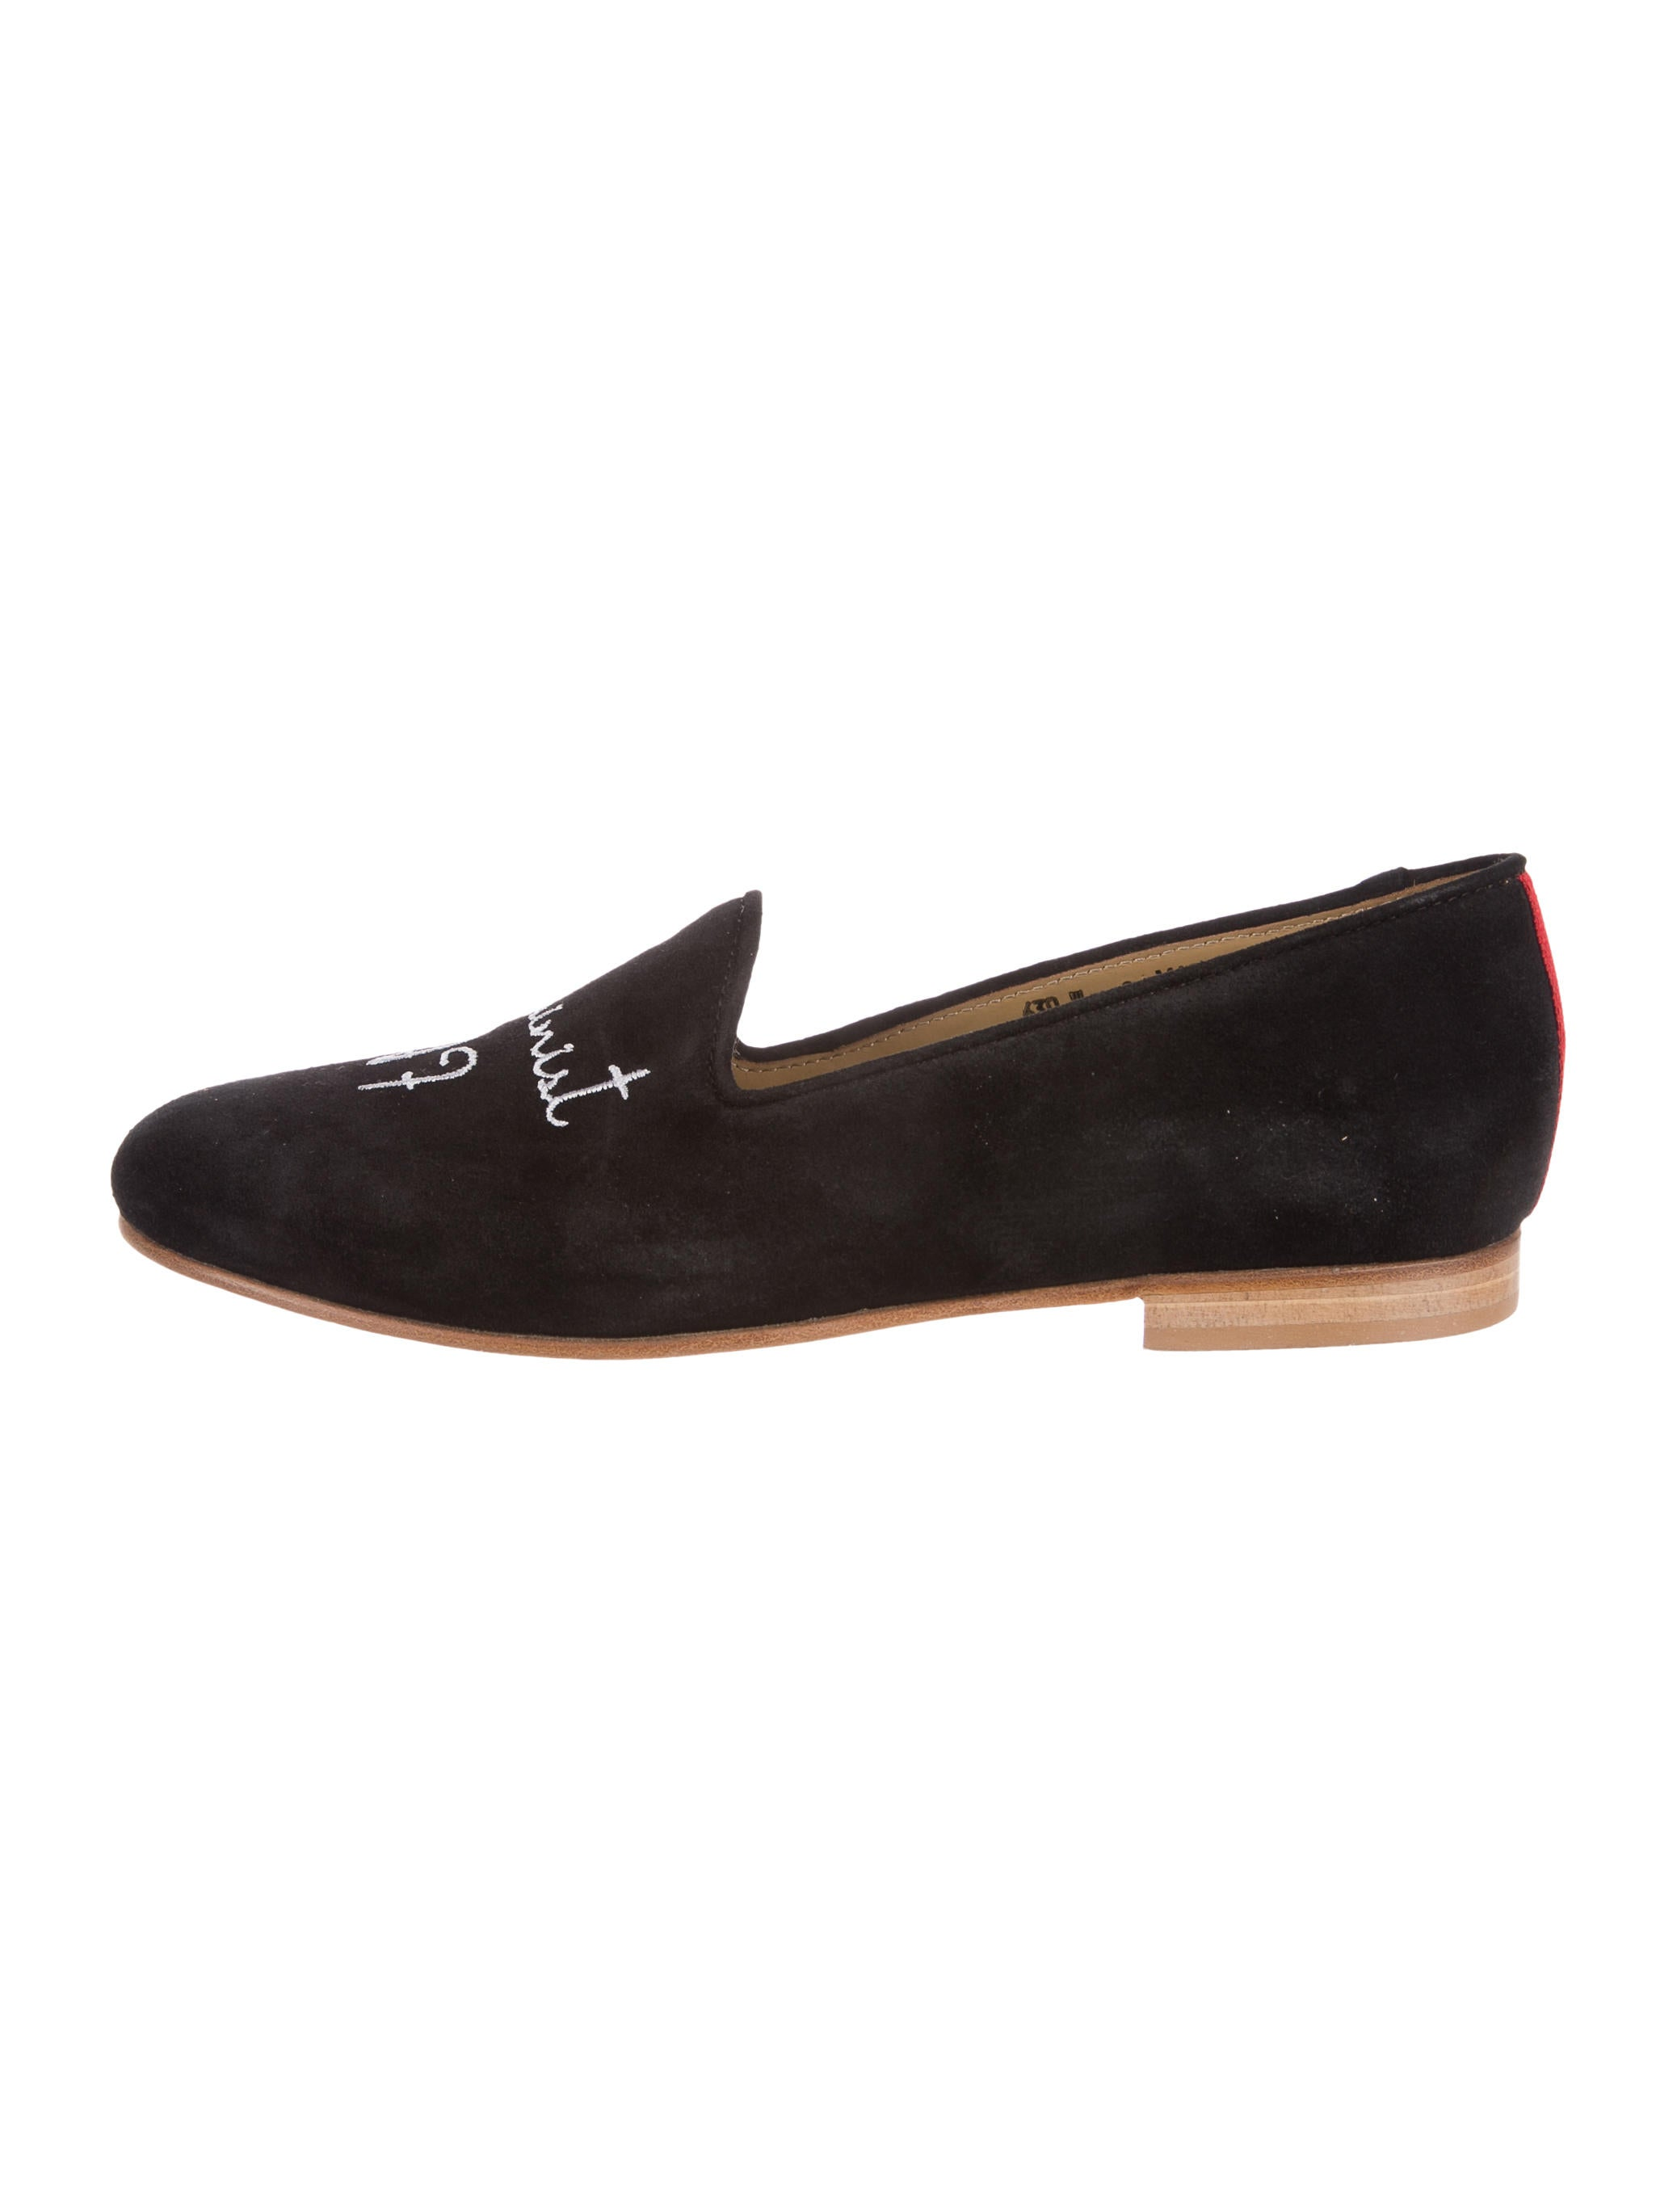 Del Toro 2017 Feminist Loafers sale recommend sale under $60 9BZSw